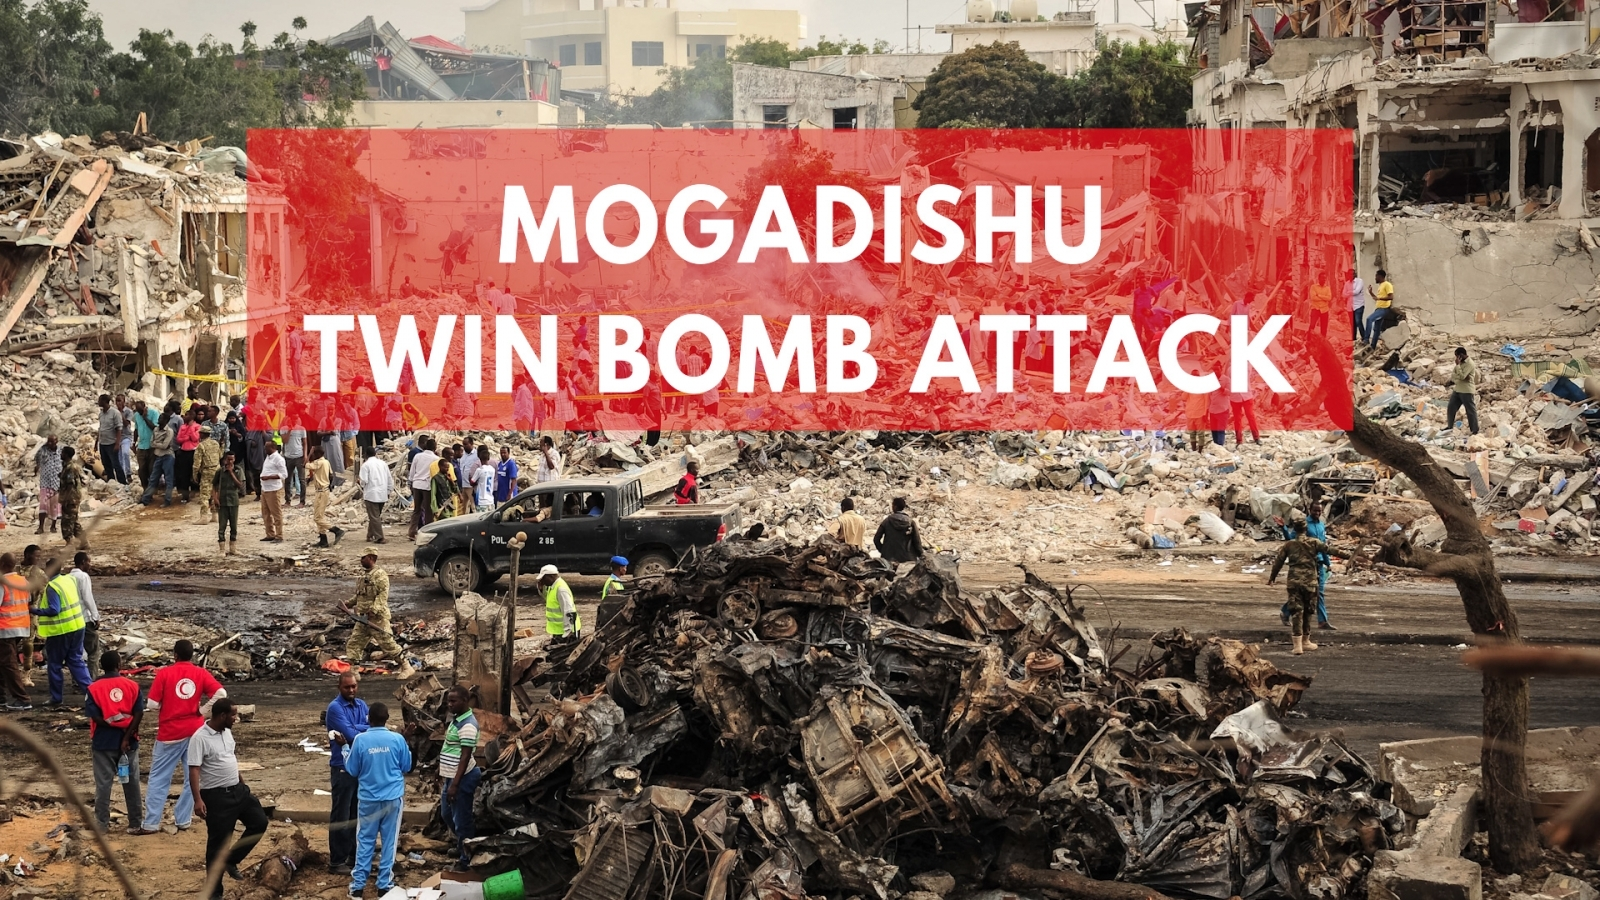 Mogadishu bomb attack: 230 confirmed dead in 'Somalia's deadliest attack'